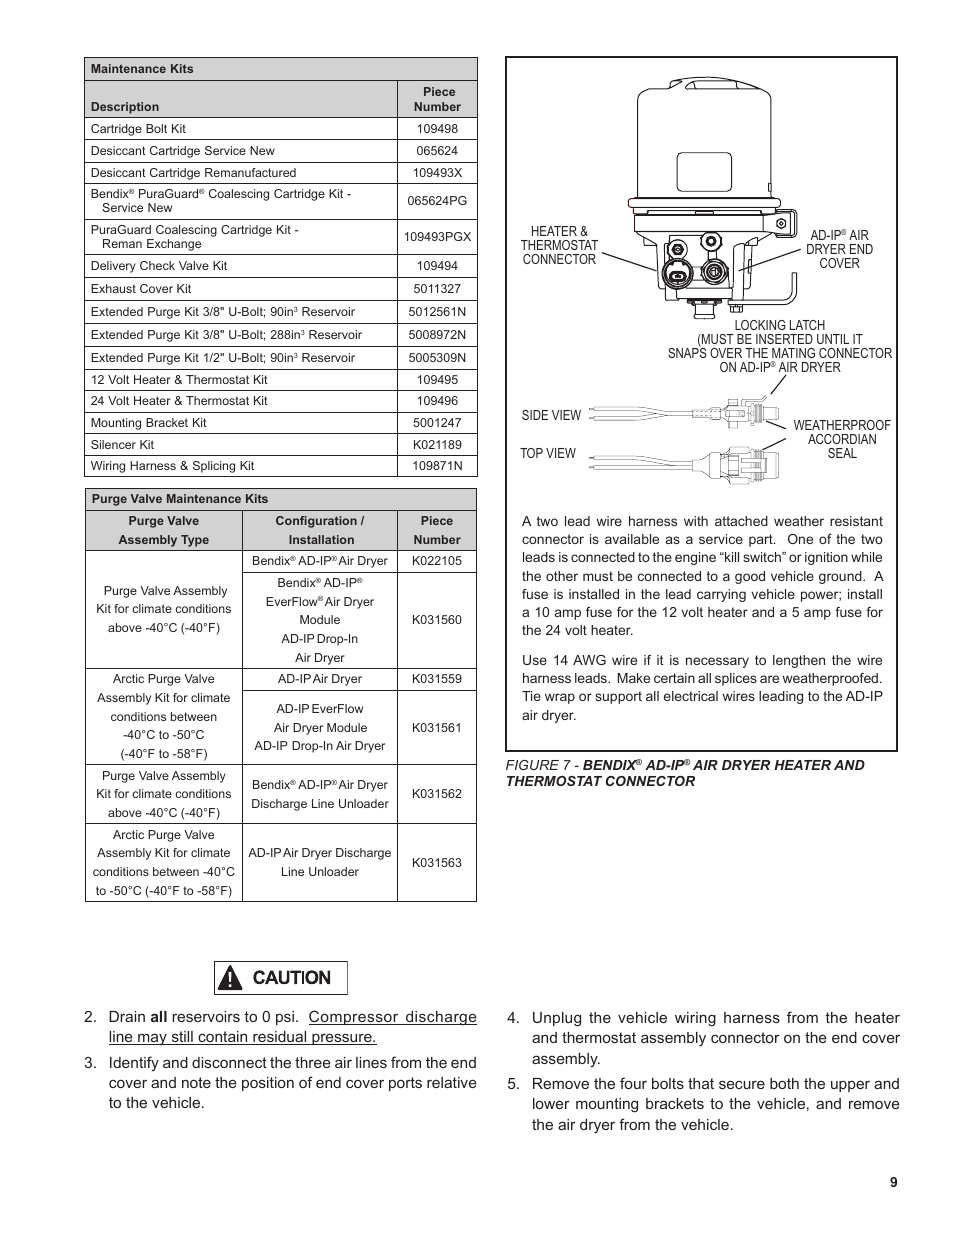 Bendix Commercial Vehicle Systems AD-SP SYSTEM PURGE AIR DRYER 10/04 User  Manual | Page 9 / 30 | Also for: AD-IP INTEGRAL PURGE AIR DRYER 5/07